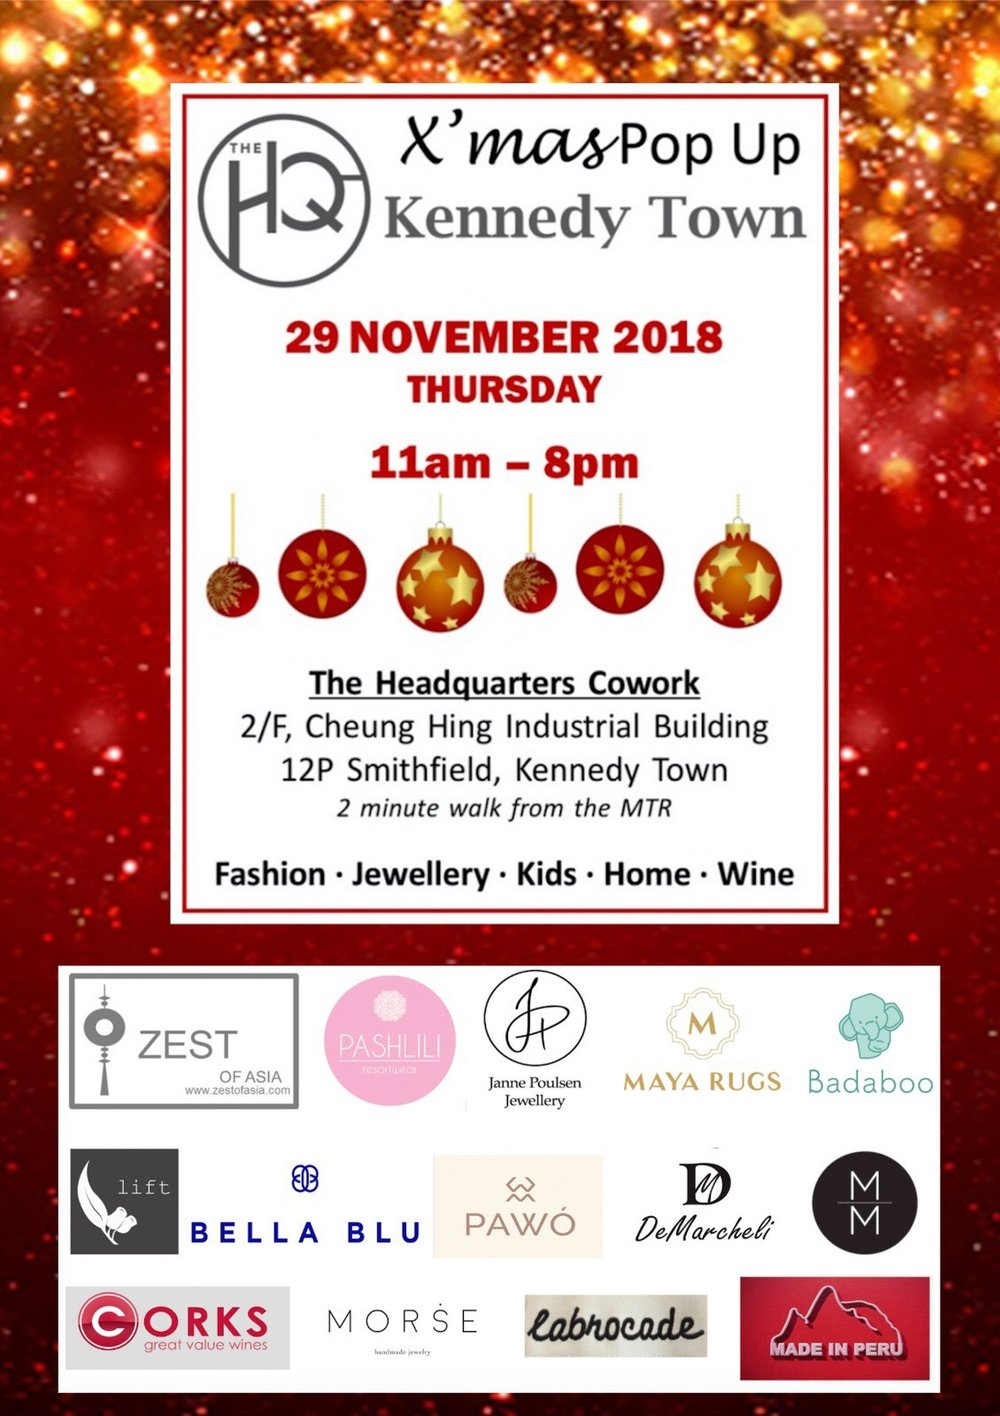 X'mas Pop up event in The Headquarters Cowork - Thu 29/11/2018 11am-8pm